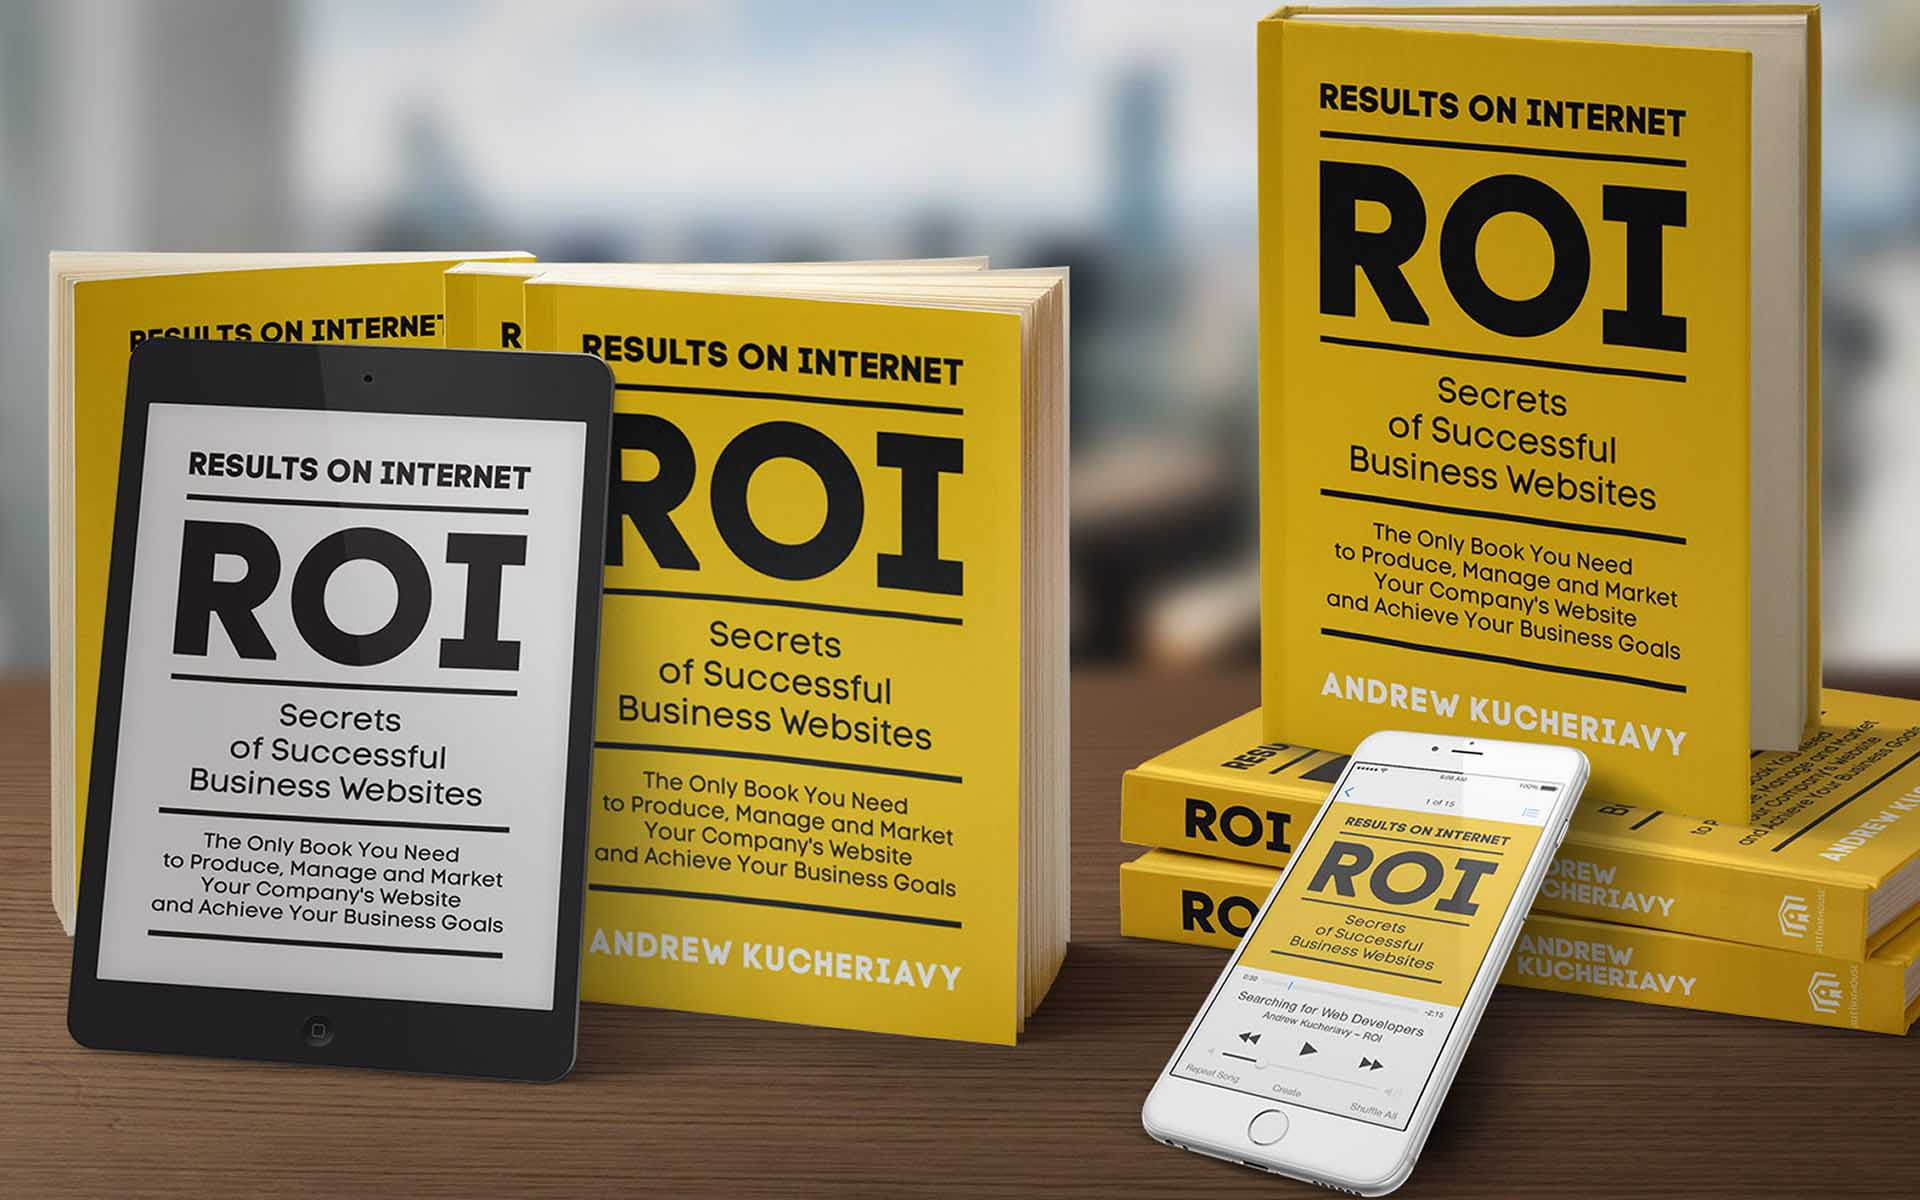 Results on Internet (ROI) Book is Published by Intechnic